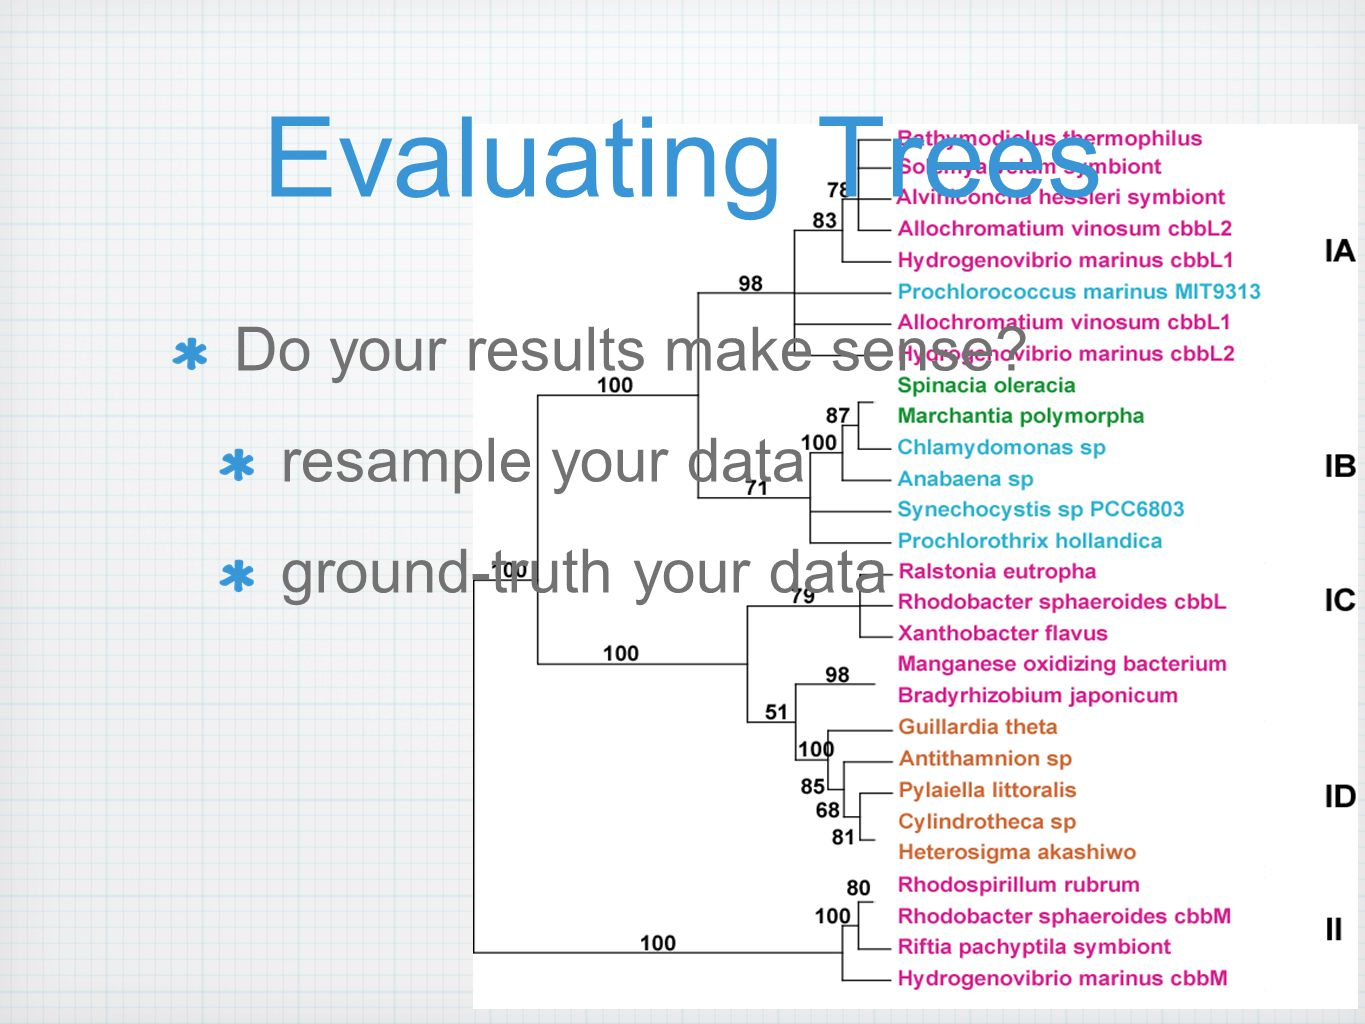 Evaluating Trees Do your results make sense resample your data ground-truth your data